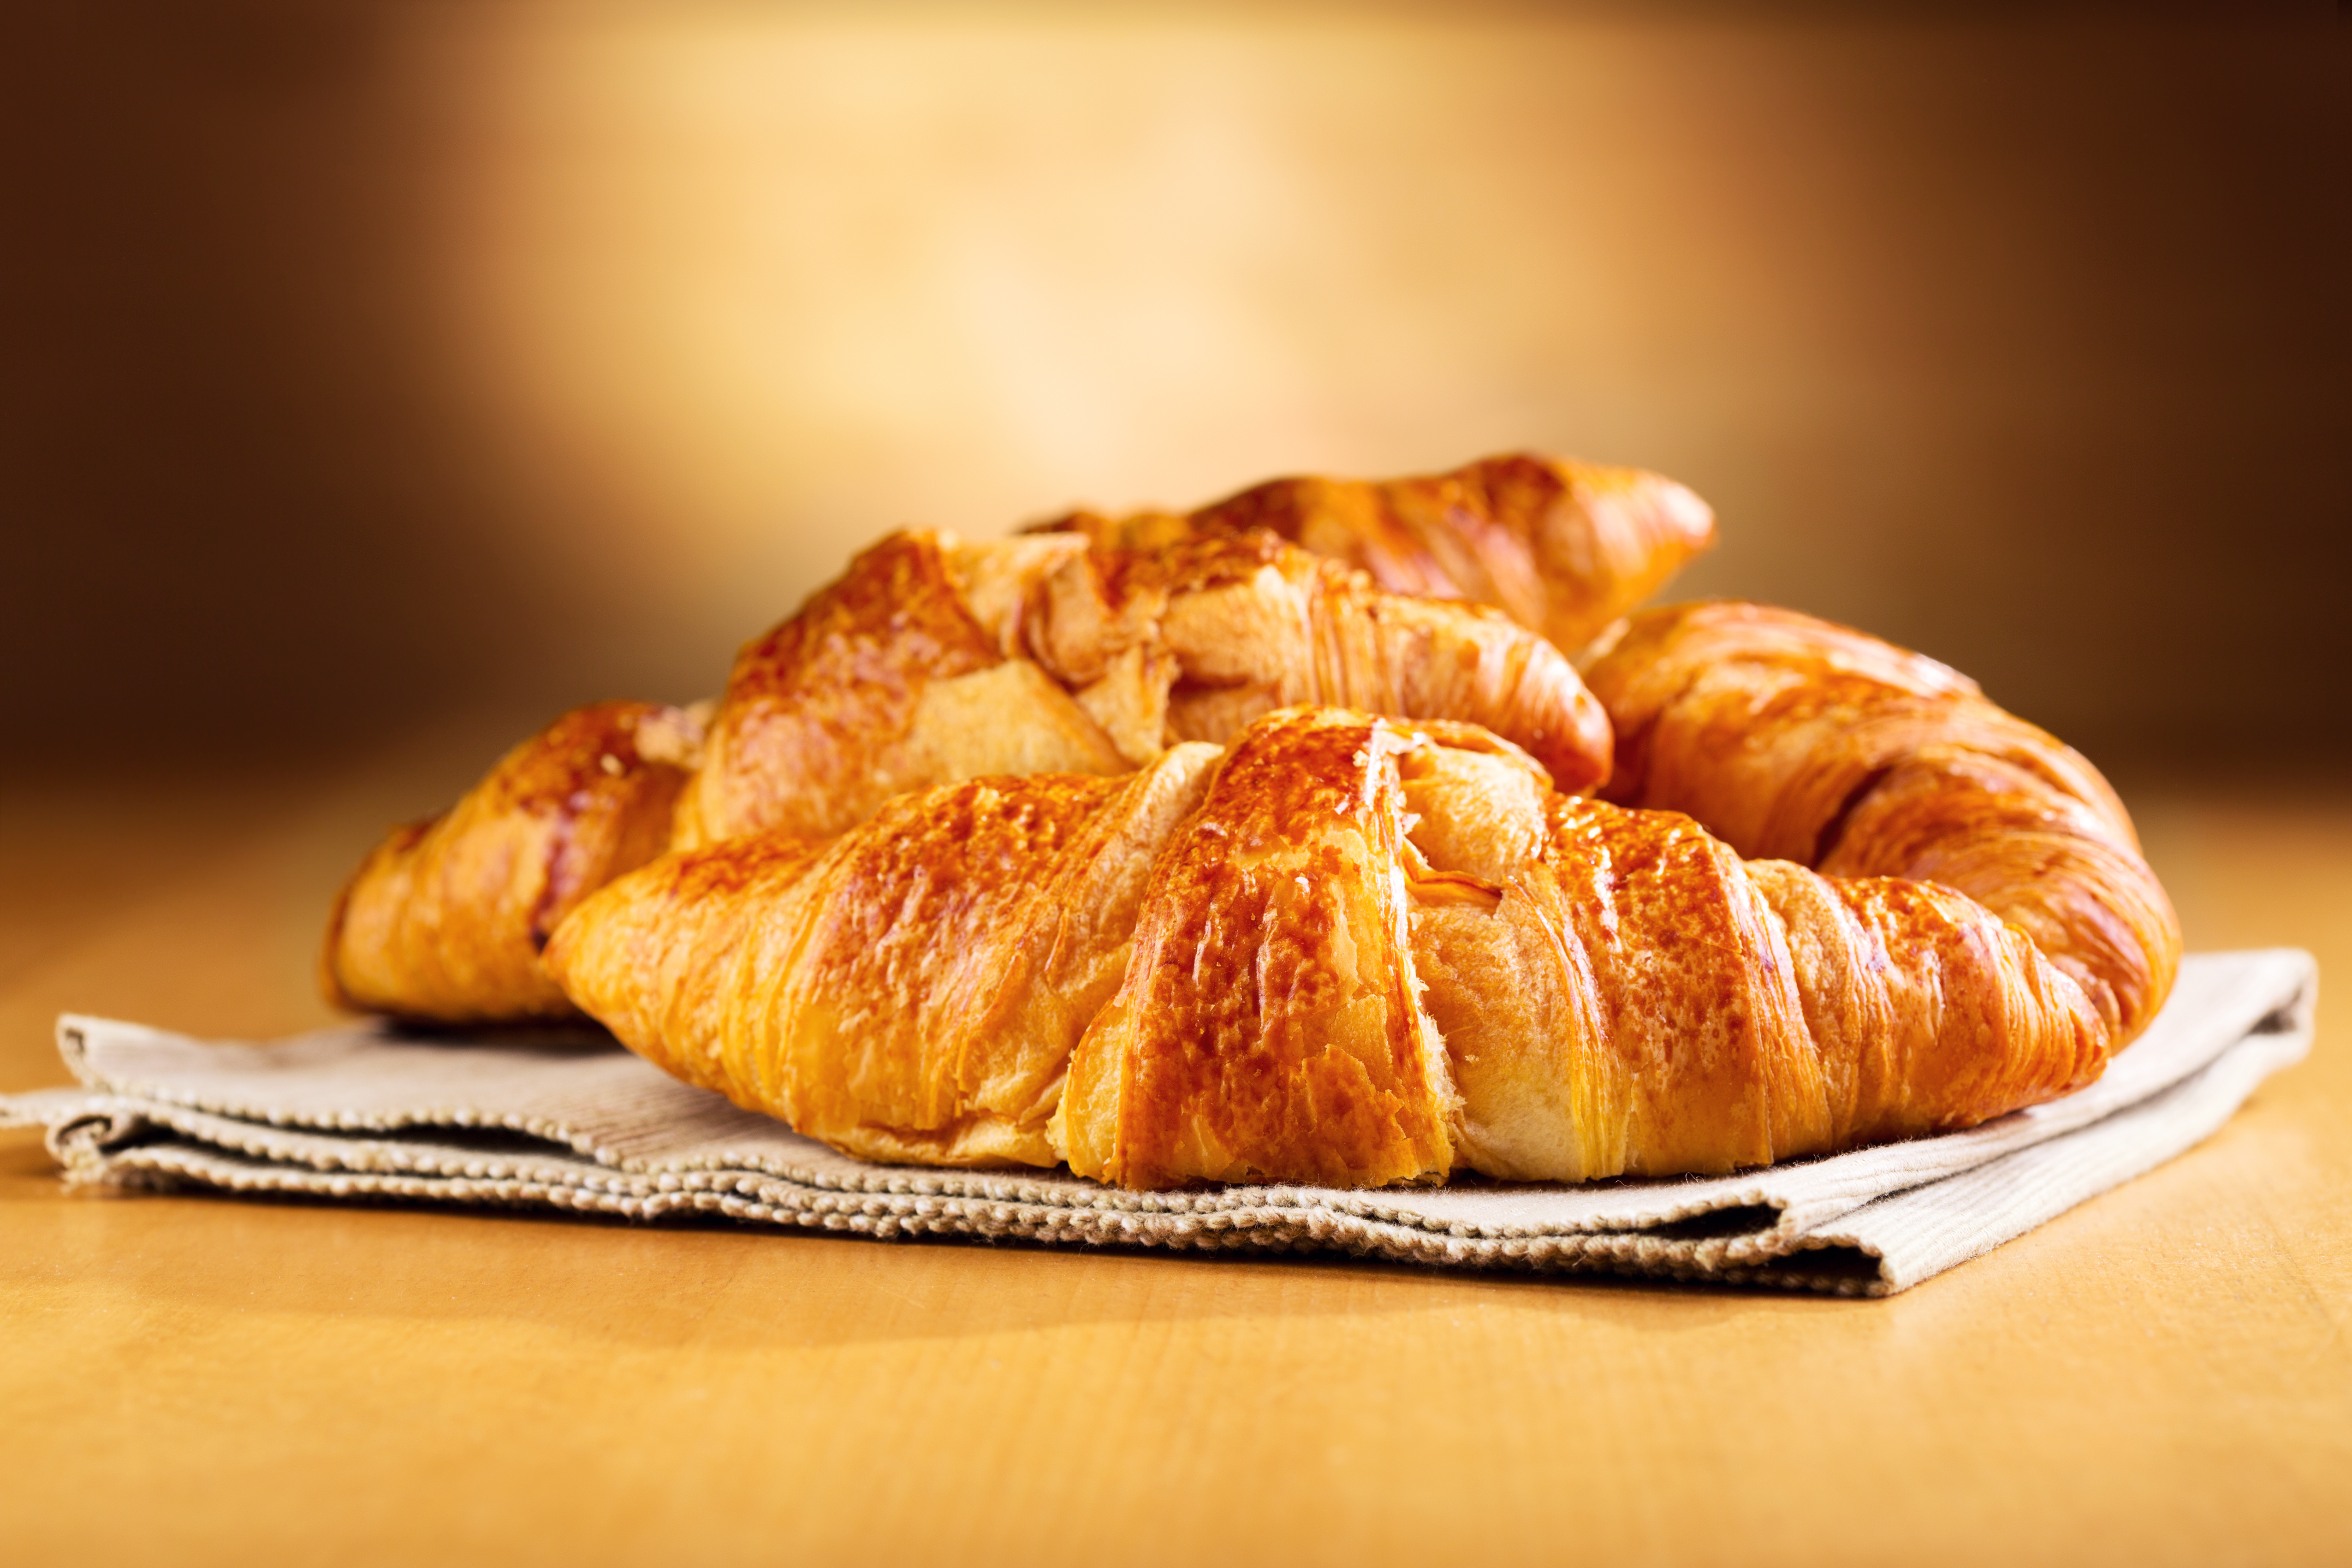 Croissant Hd Wallpapers